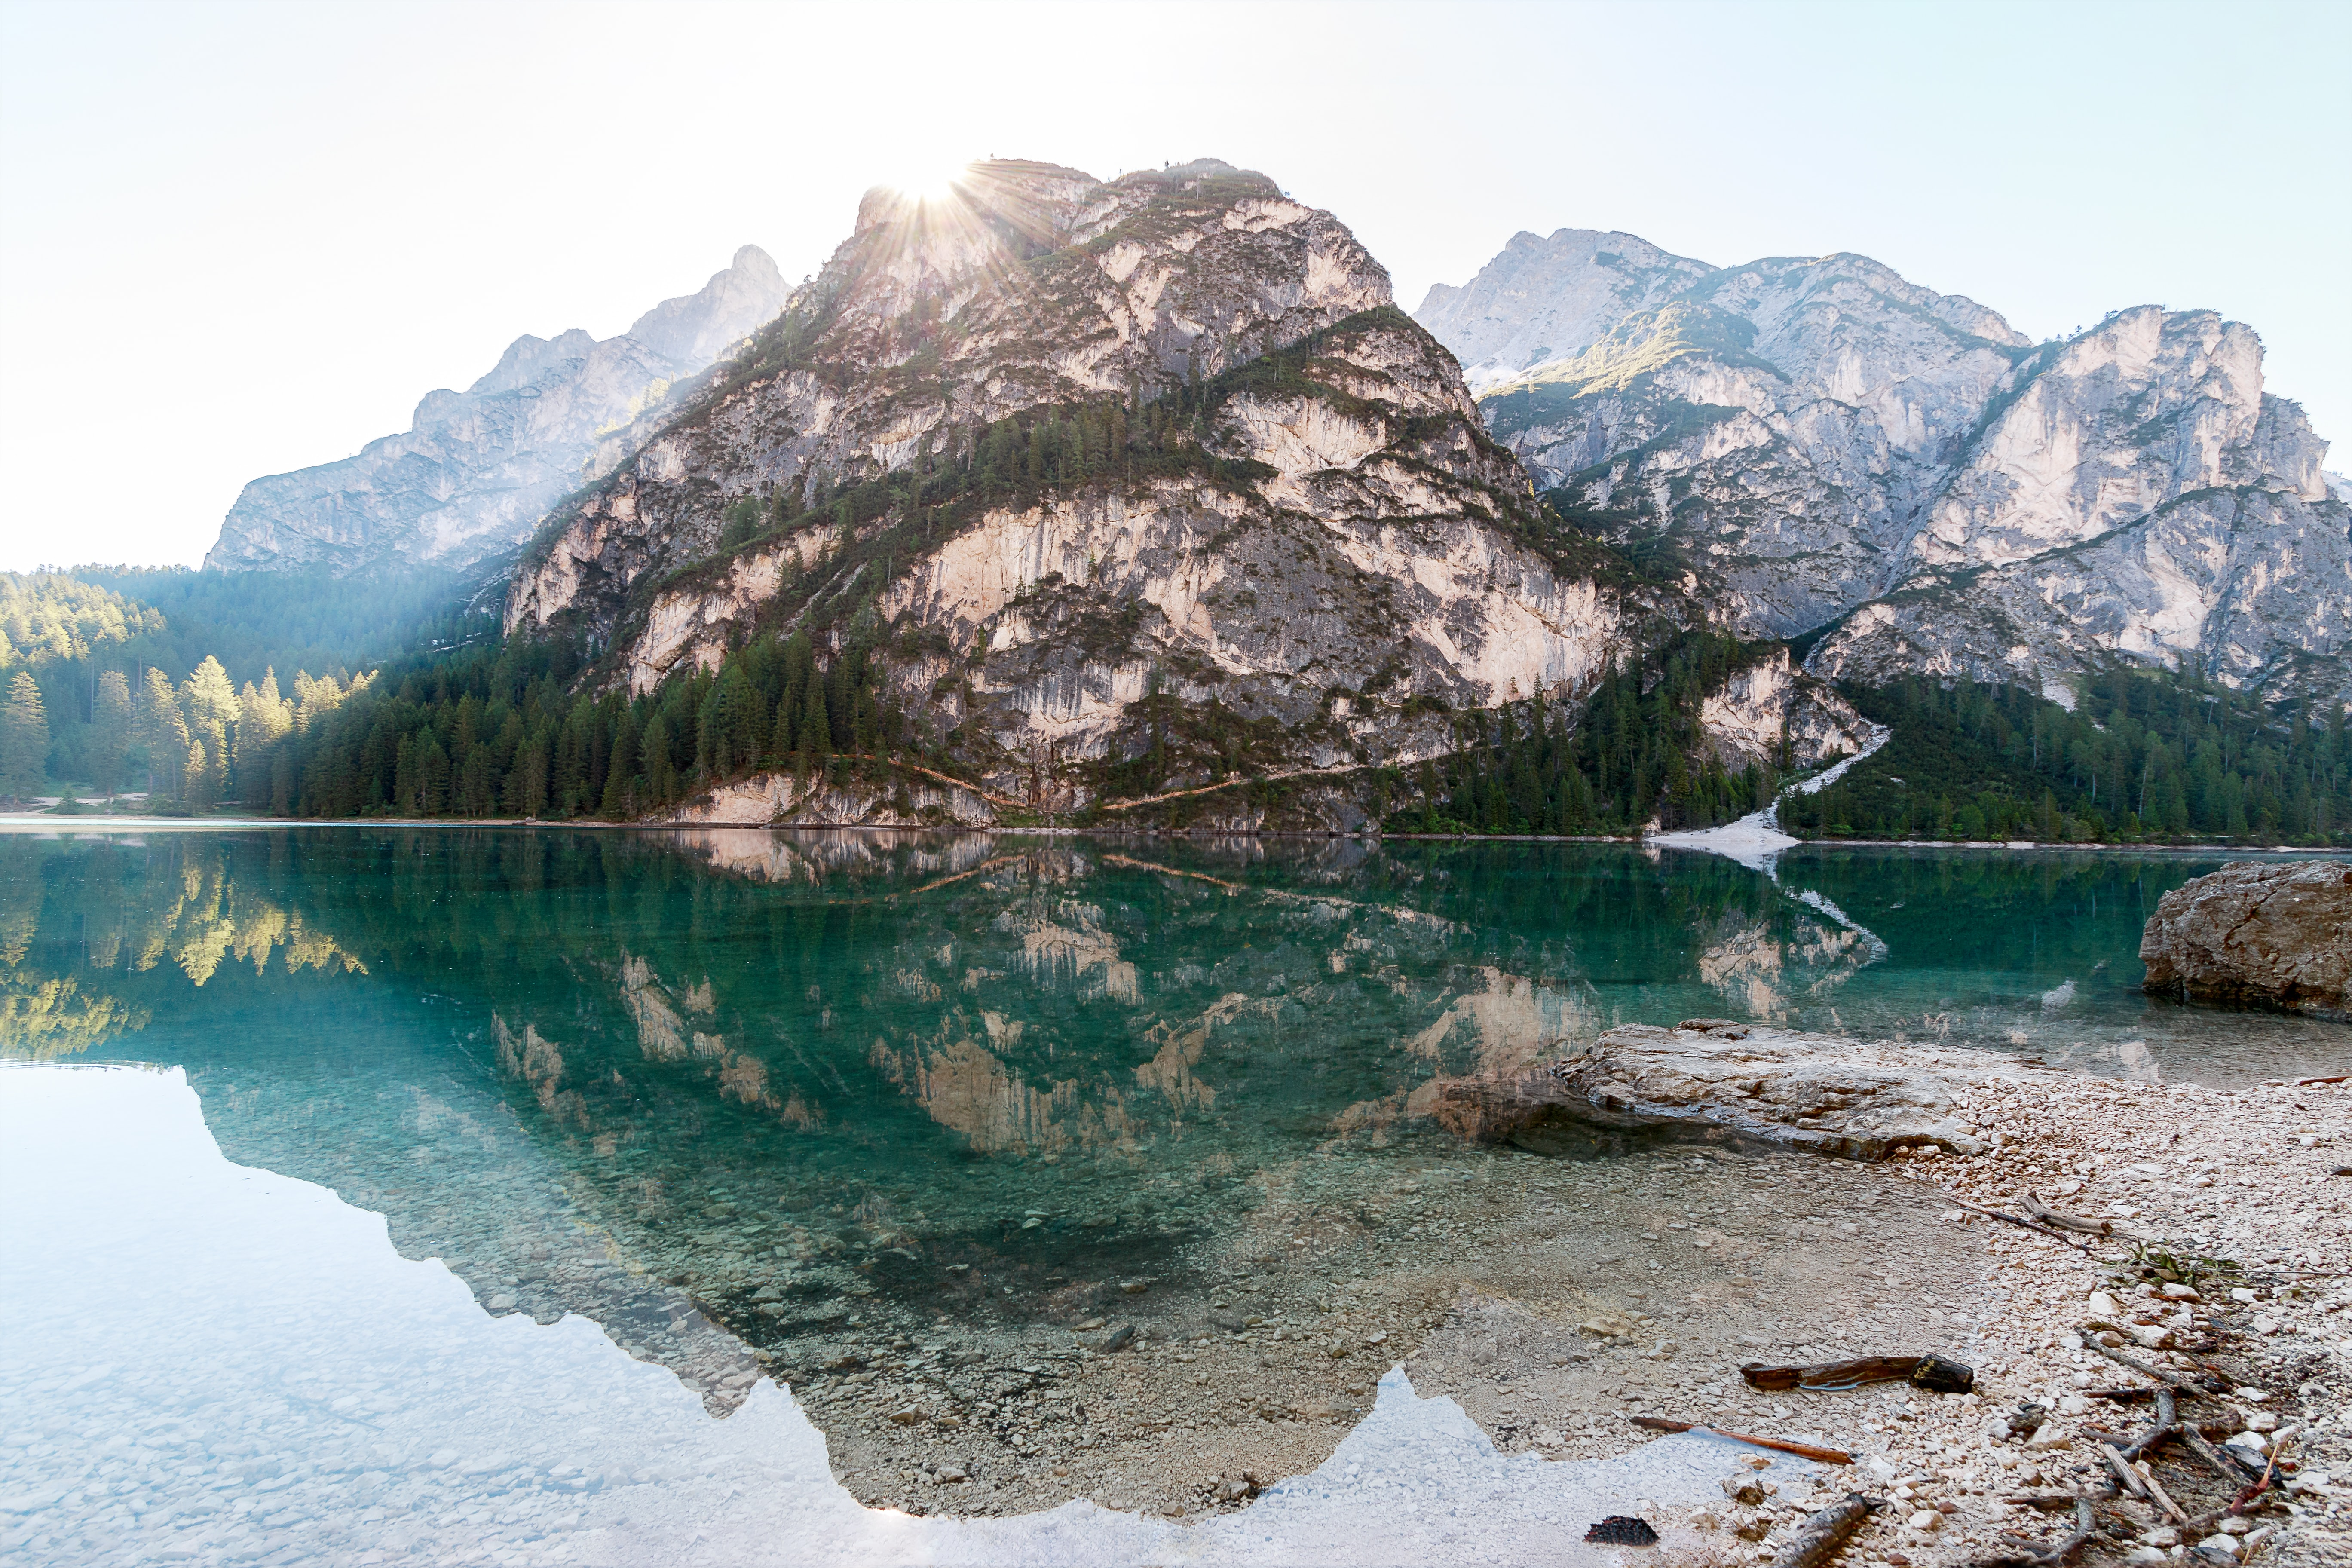 Mountains reflected in the crystal-clear Lake Pragser Wildsee